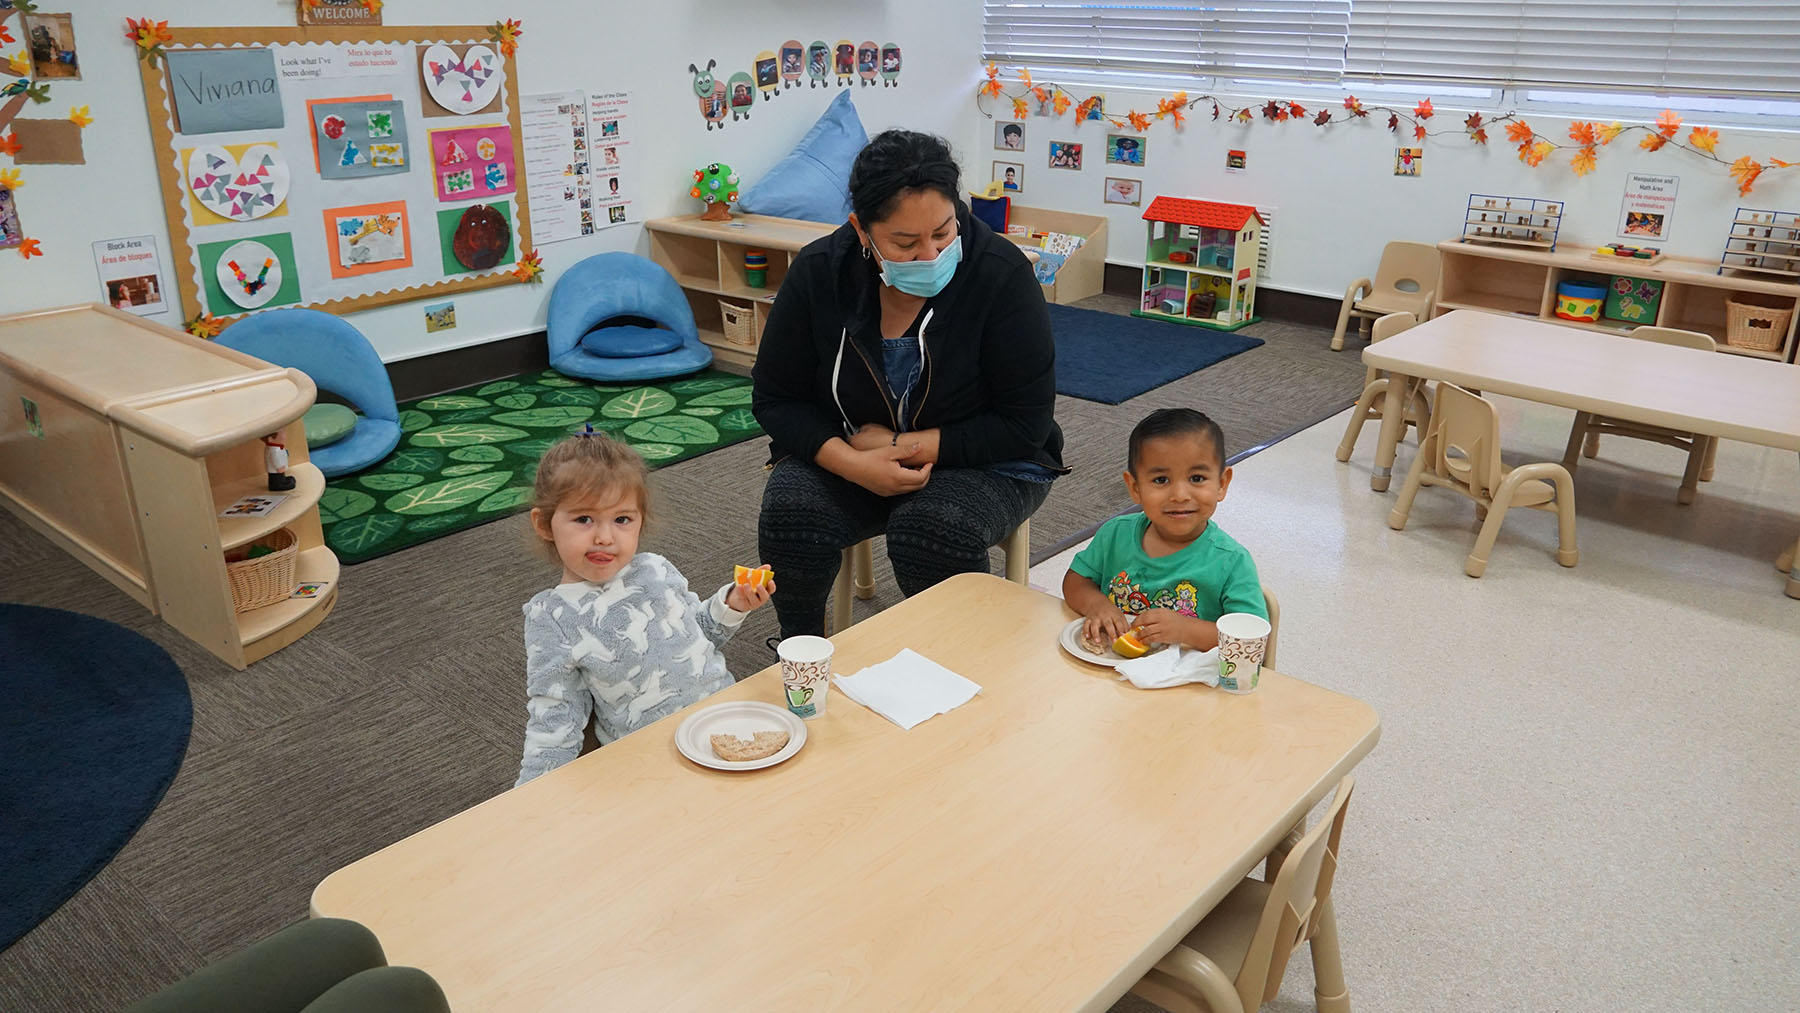 Children break for snack time at Venice Family Clinic in Los Angeles, Ca. The health center runs an early head start program for newborns to children up to three years of age. (Photo Courtesy of Venice Family Clinic)